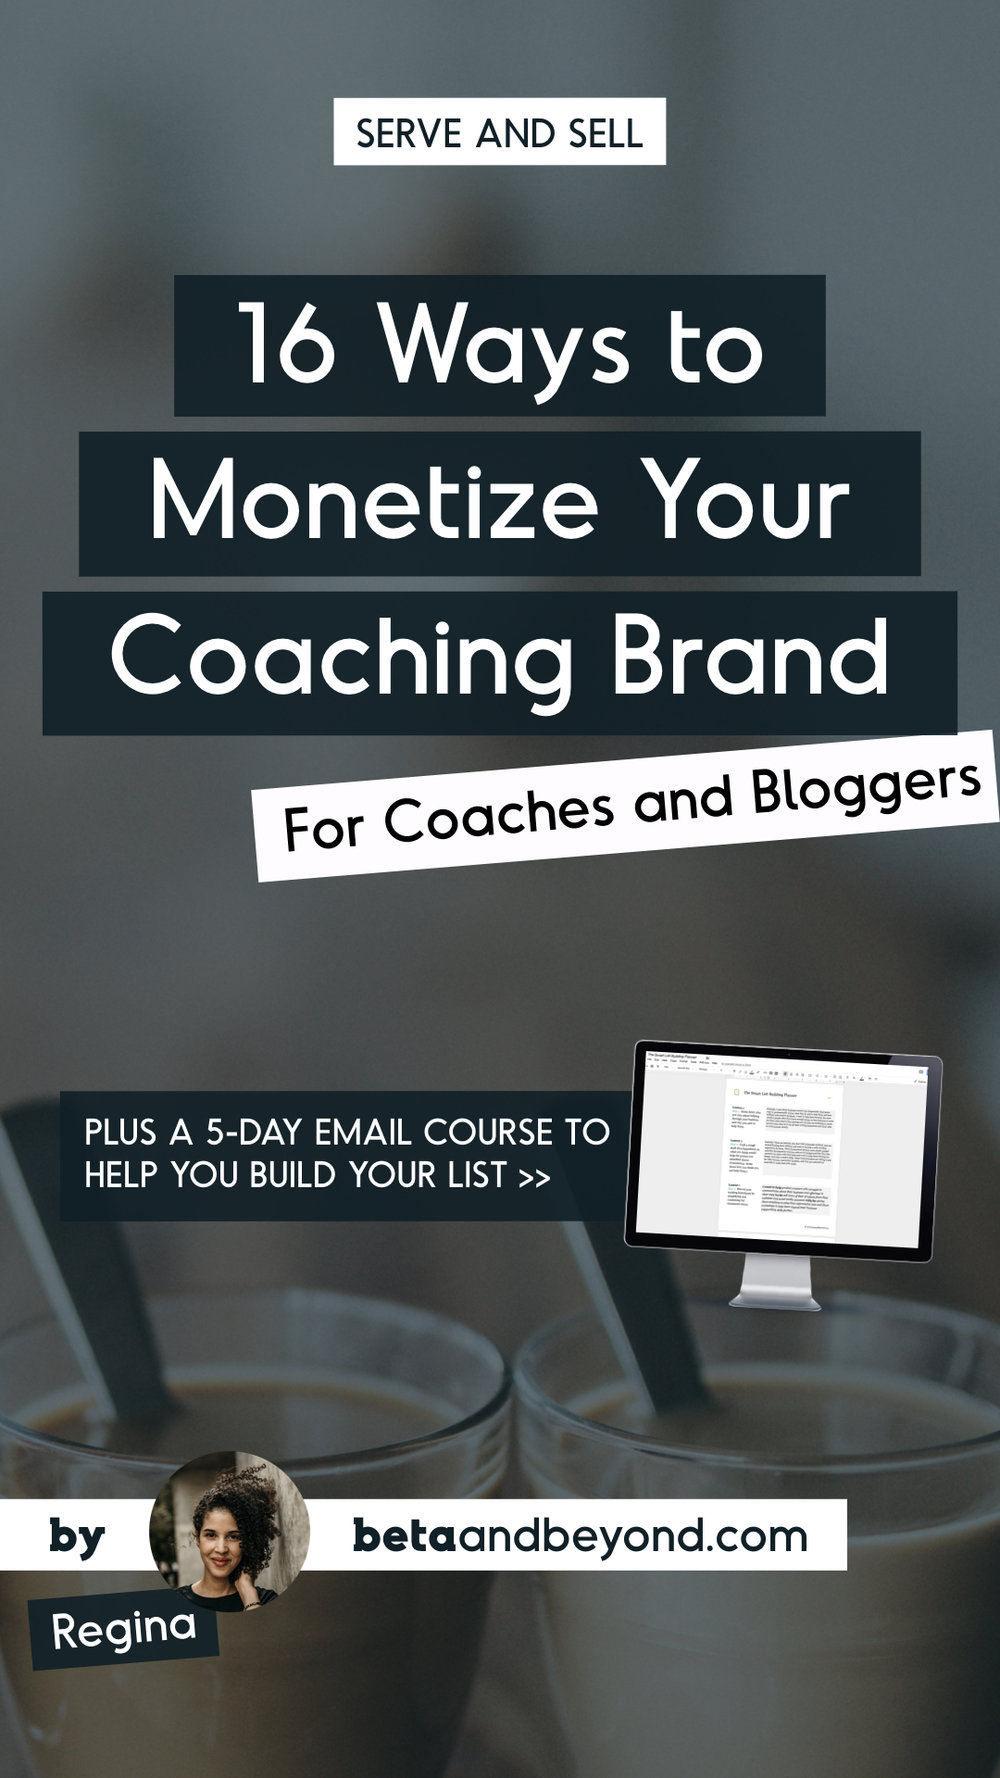 16-ways-to-monetize-your-coaching-brand.001.jpeg